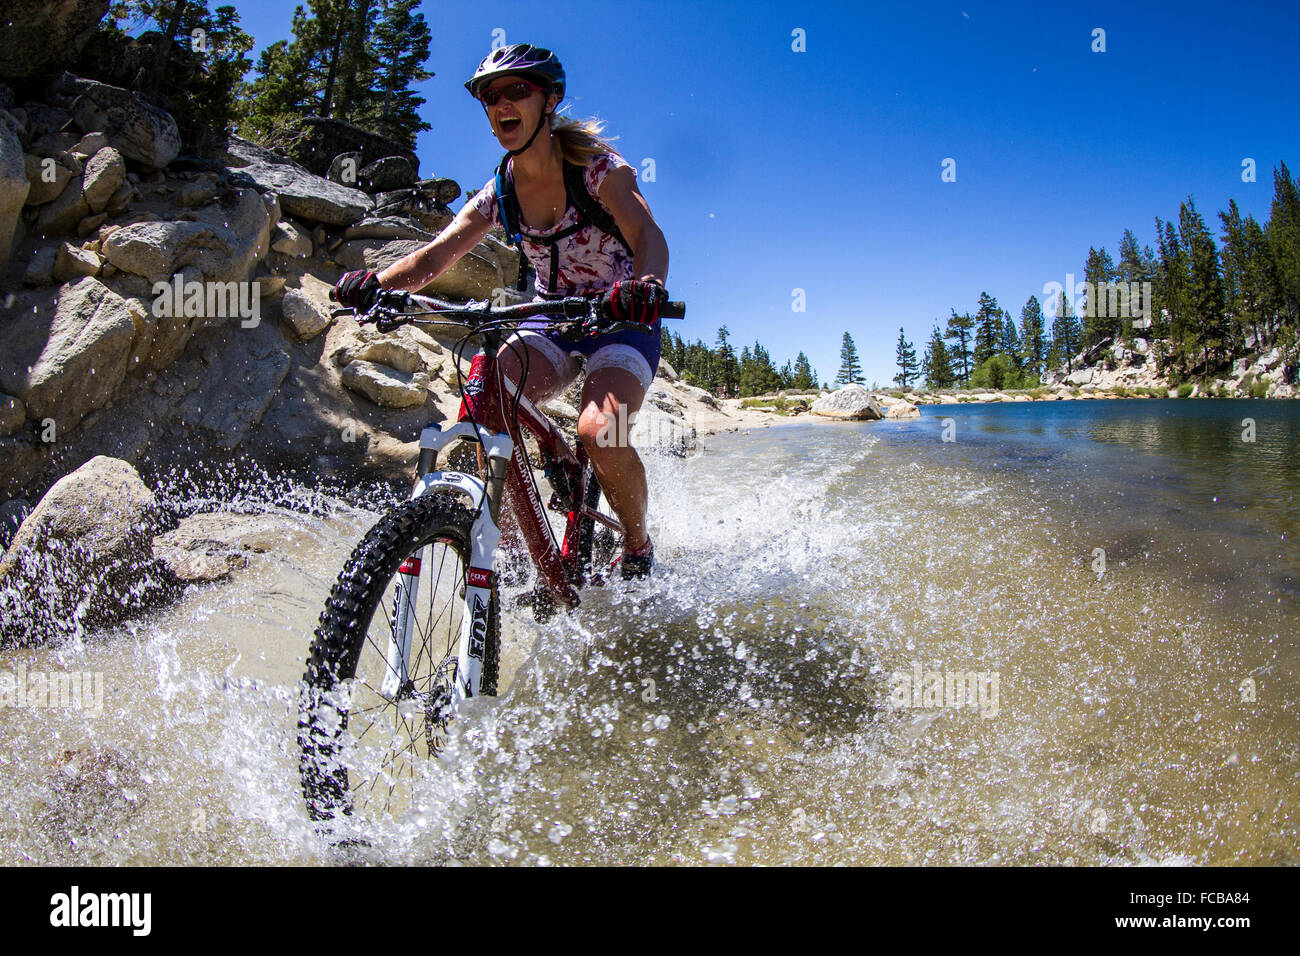 Mountain Biking on Flume Trail, Tahoe, CA Stock Photo